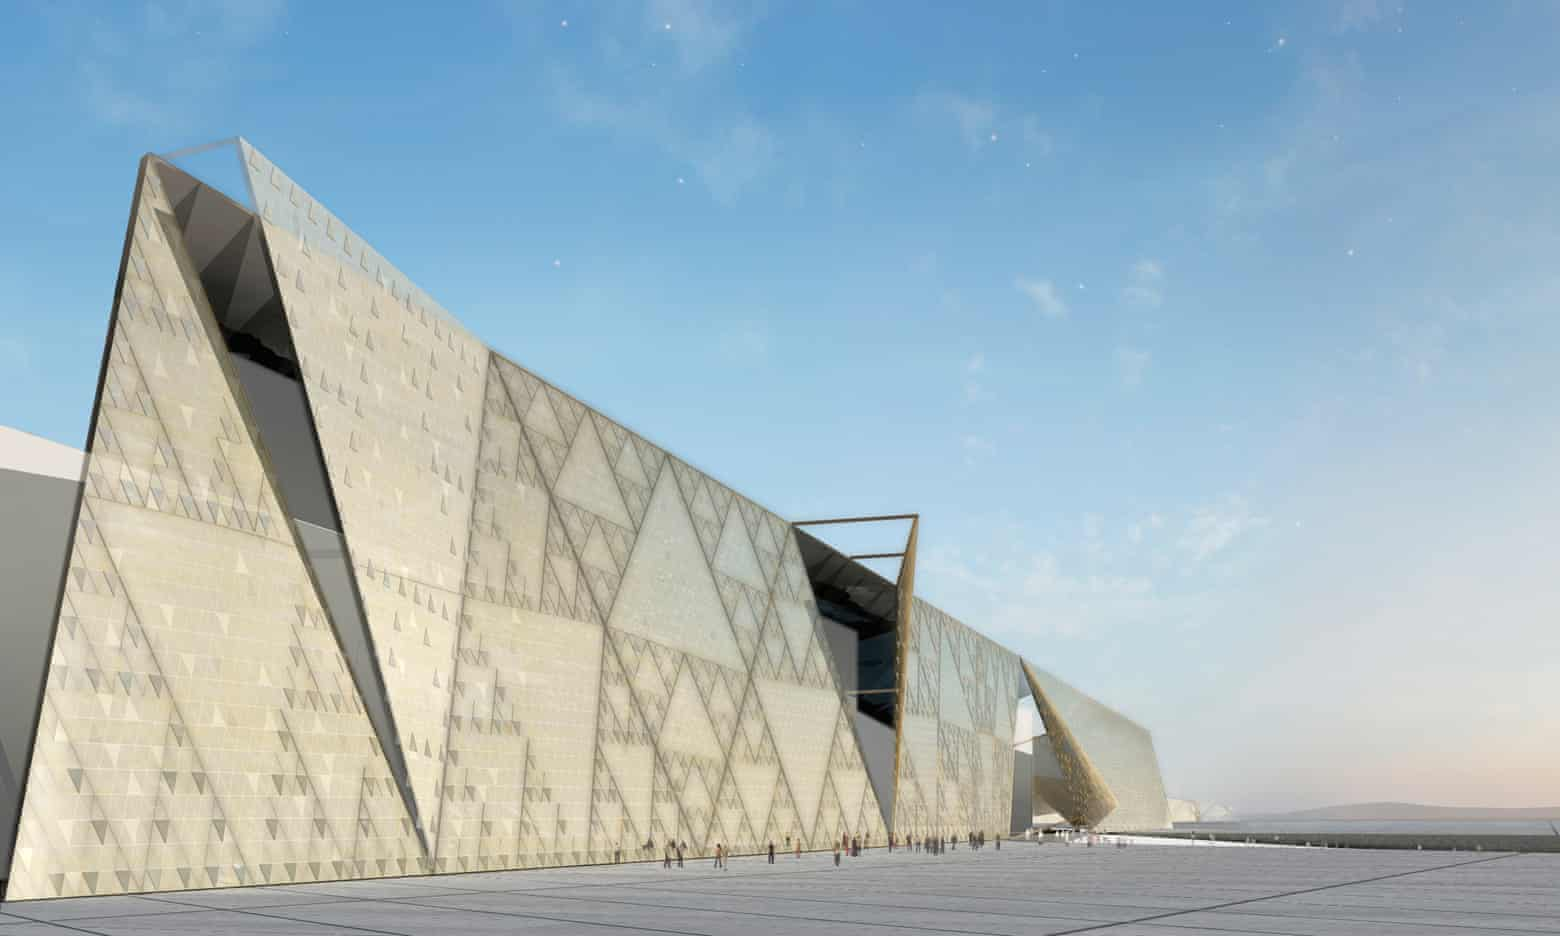 The Grand Egyptian Museum exteriror